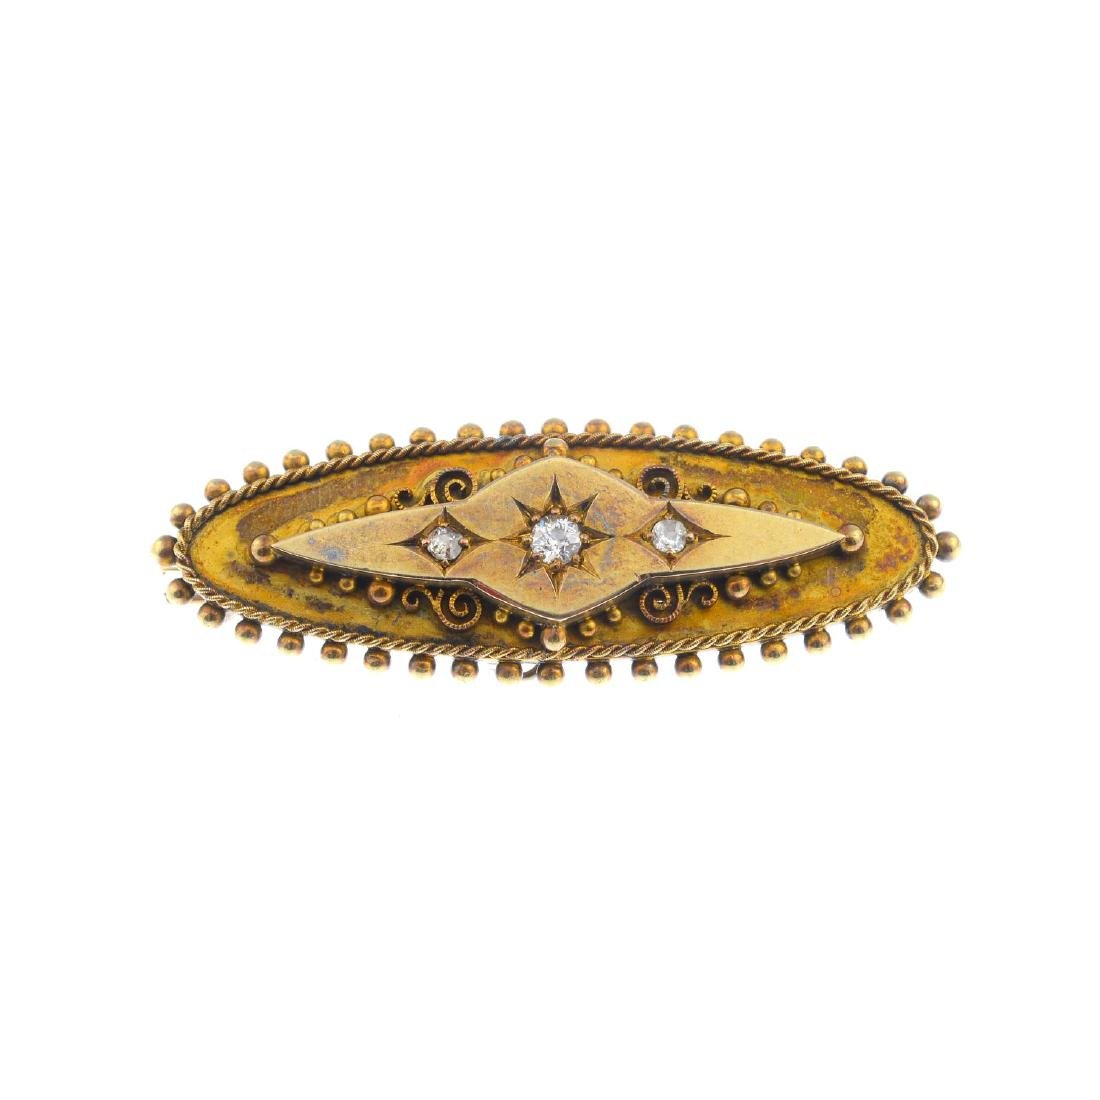 A late Victorian 15ct gold diamond brooch. The slightly